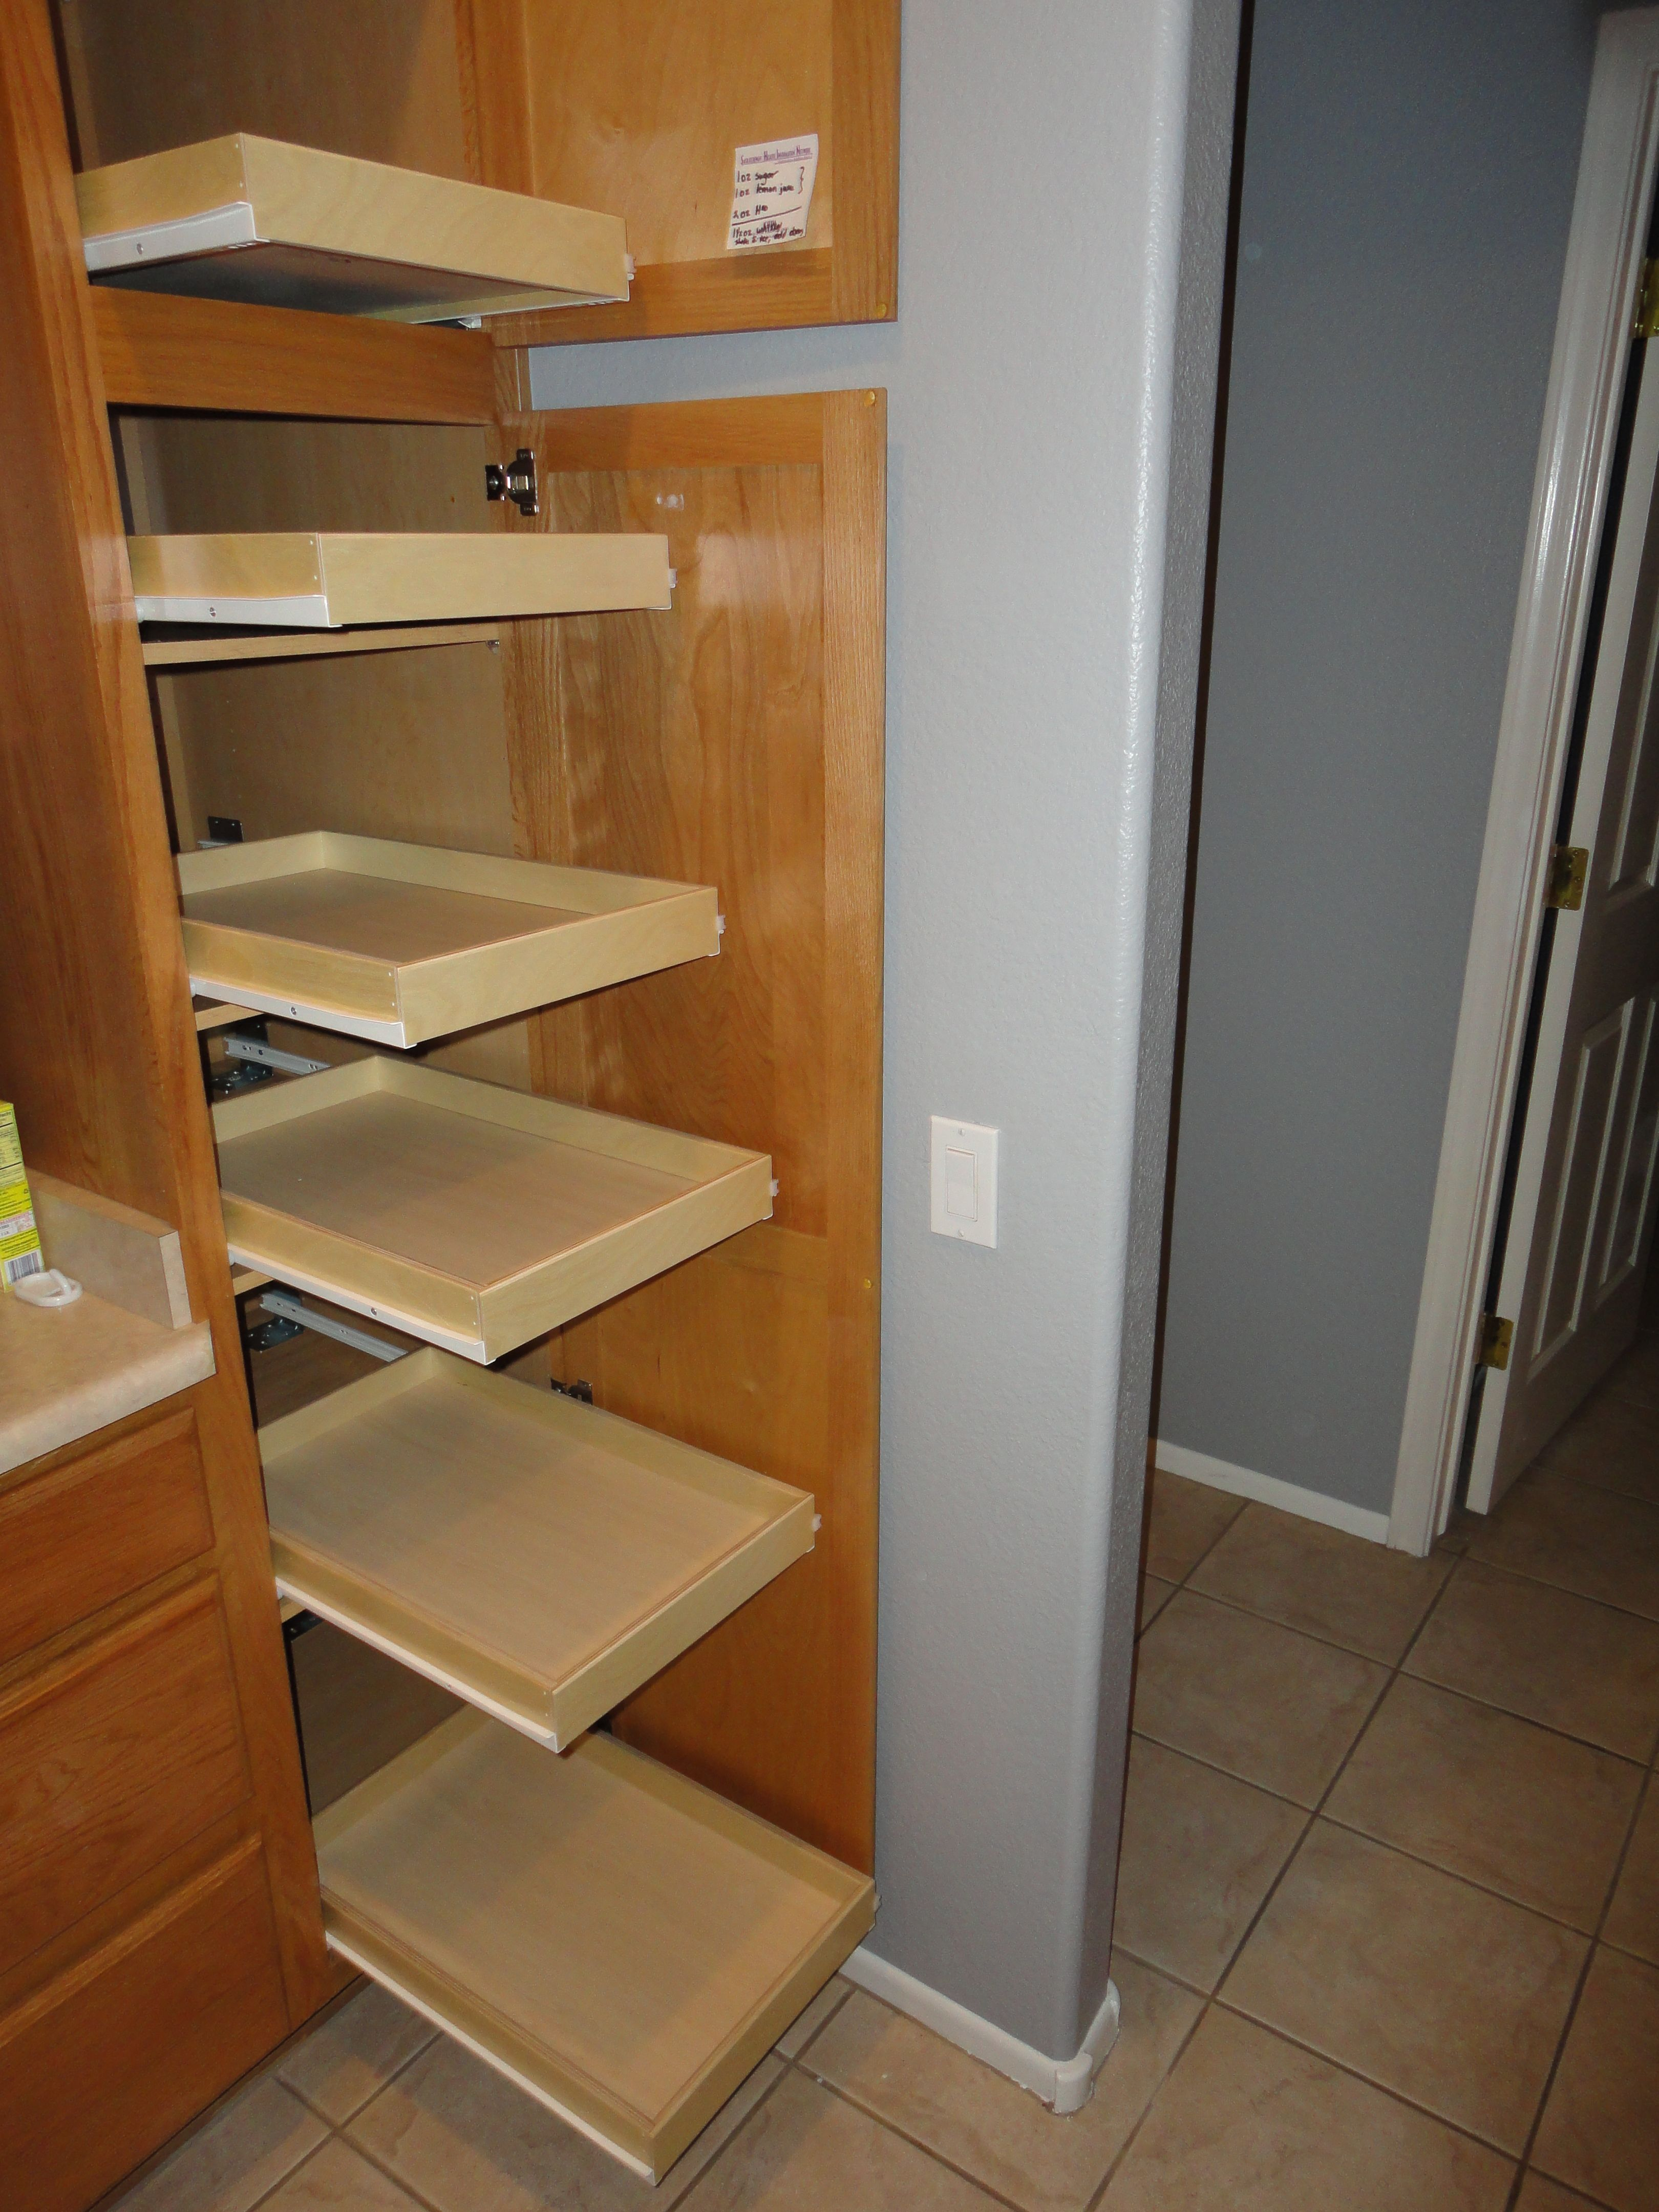 Pull Out Kitchen Shelf 2 3/8 Tall | For 06\'\' to 16\'\' Wide ...